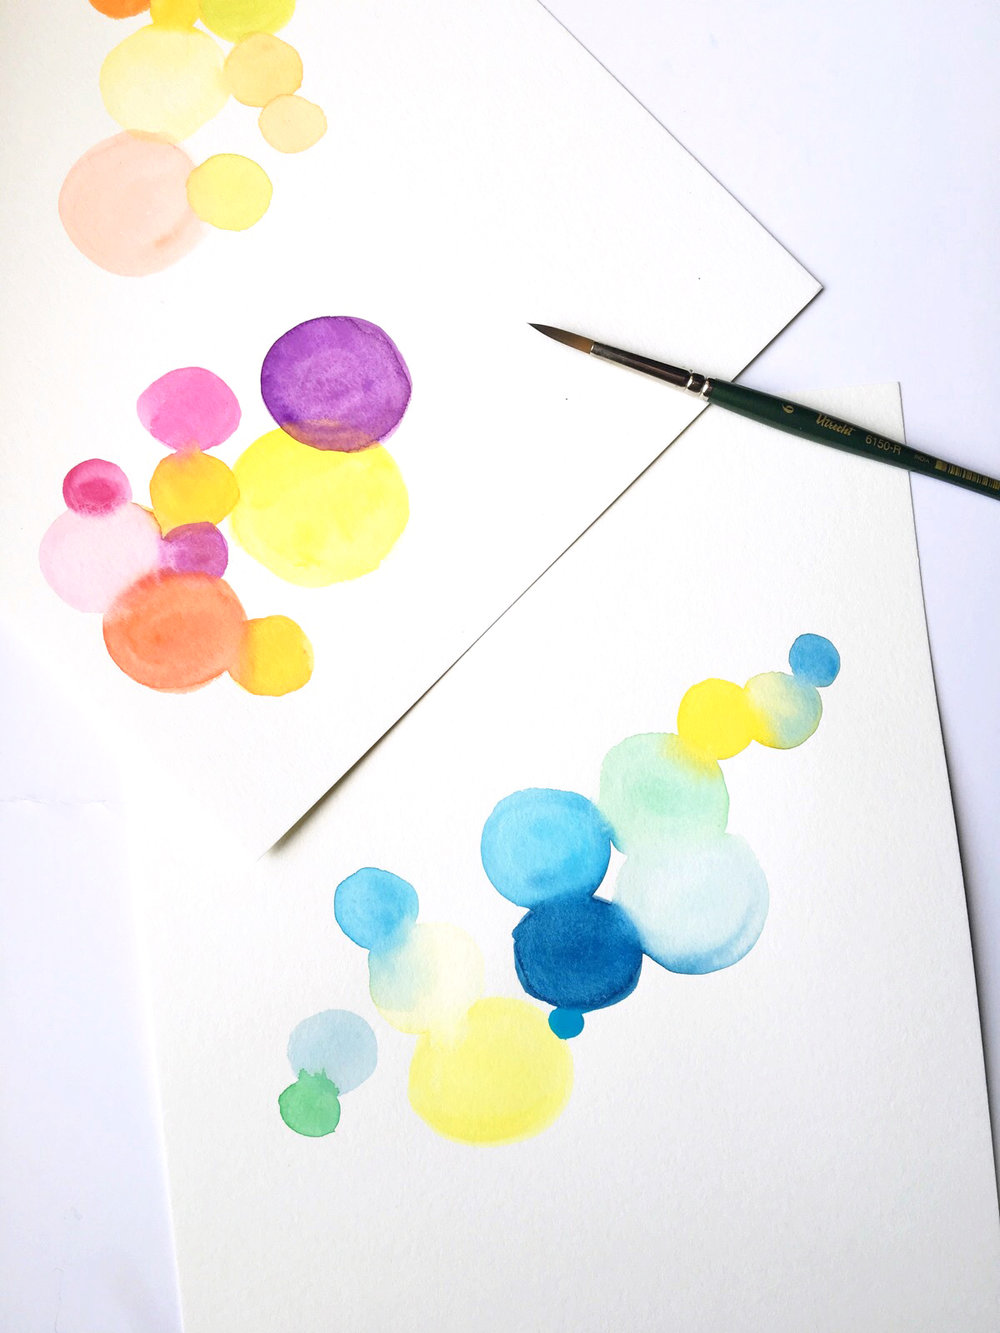 What I'm Learning: How to Watercolor | Amanda Gomes • delightedco.com